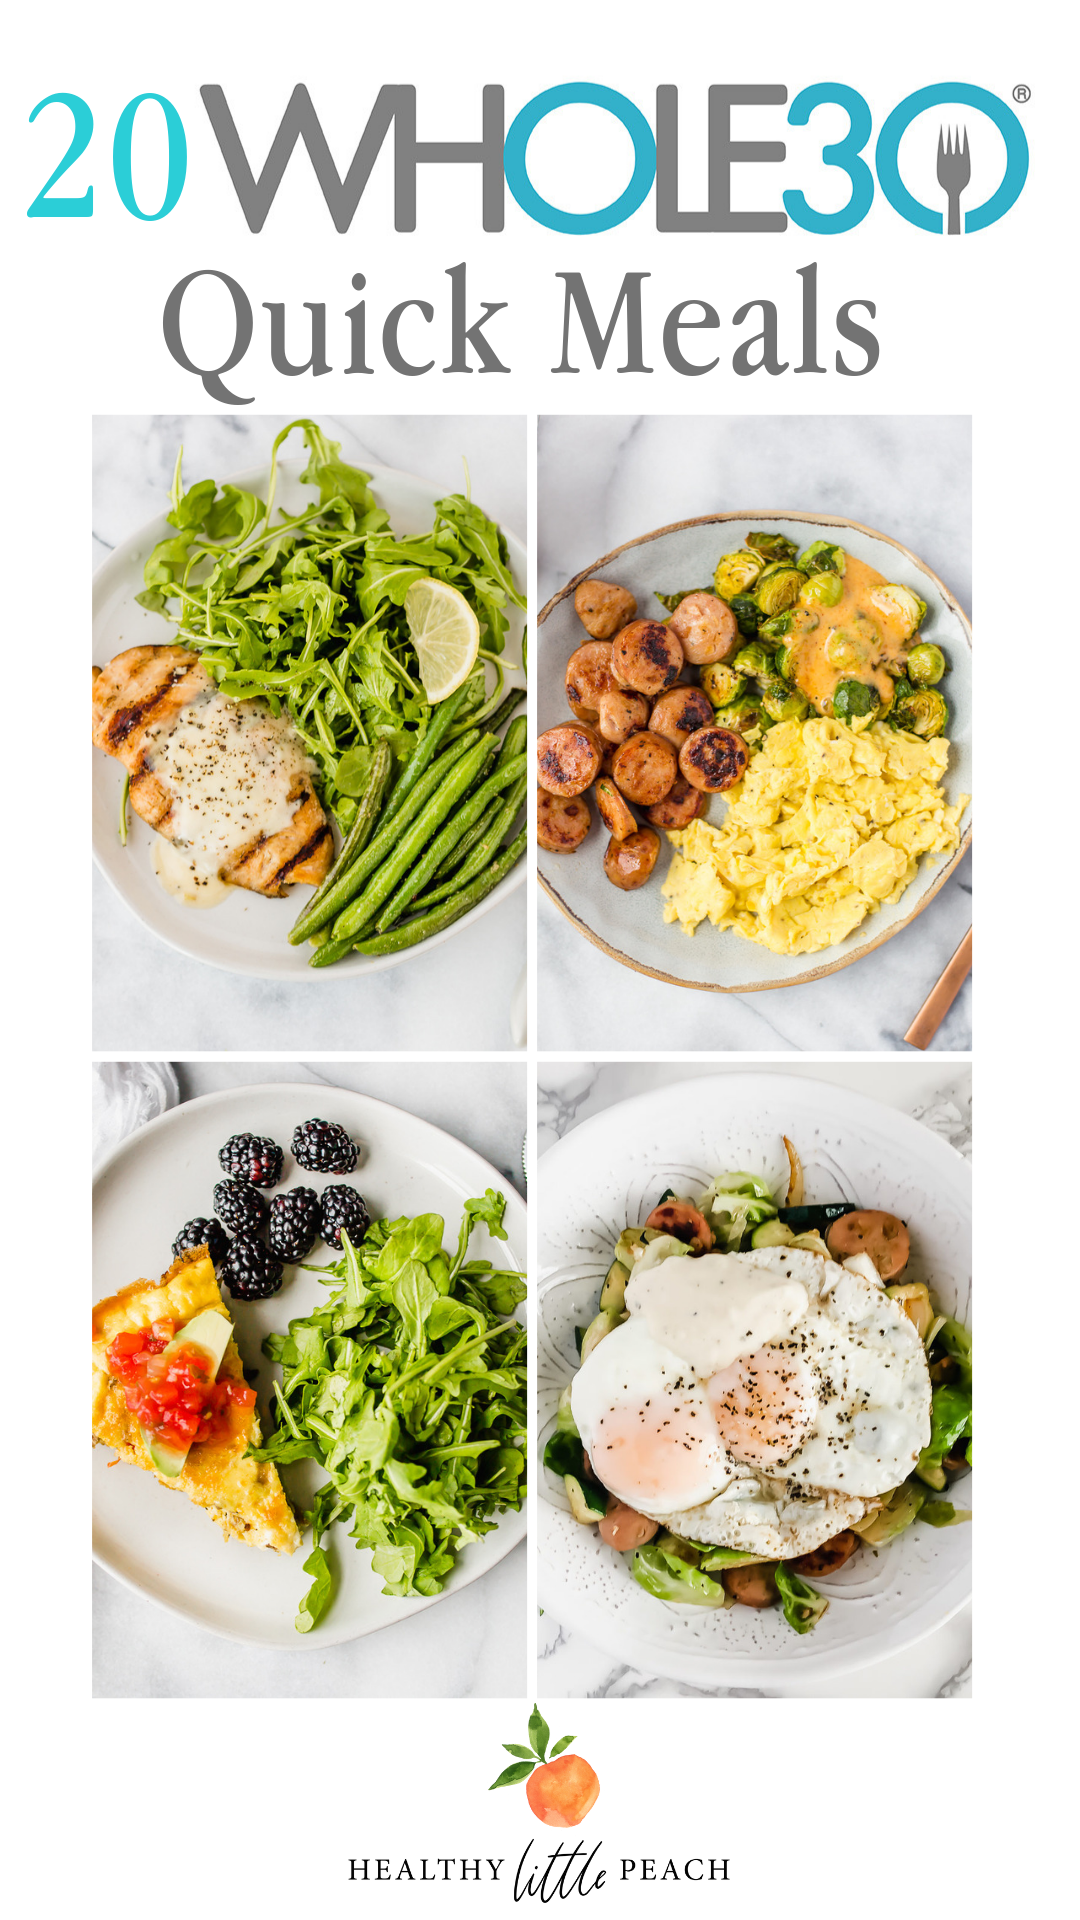 Quick and Easy Whole30 Meal Ideas images